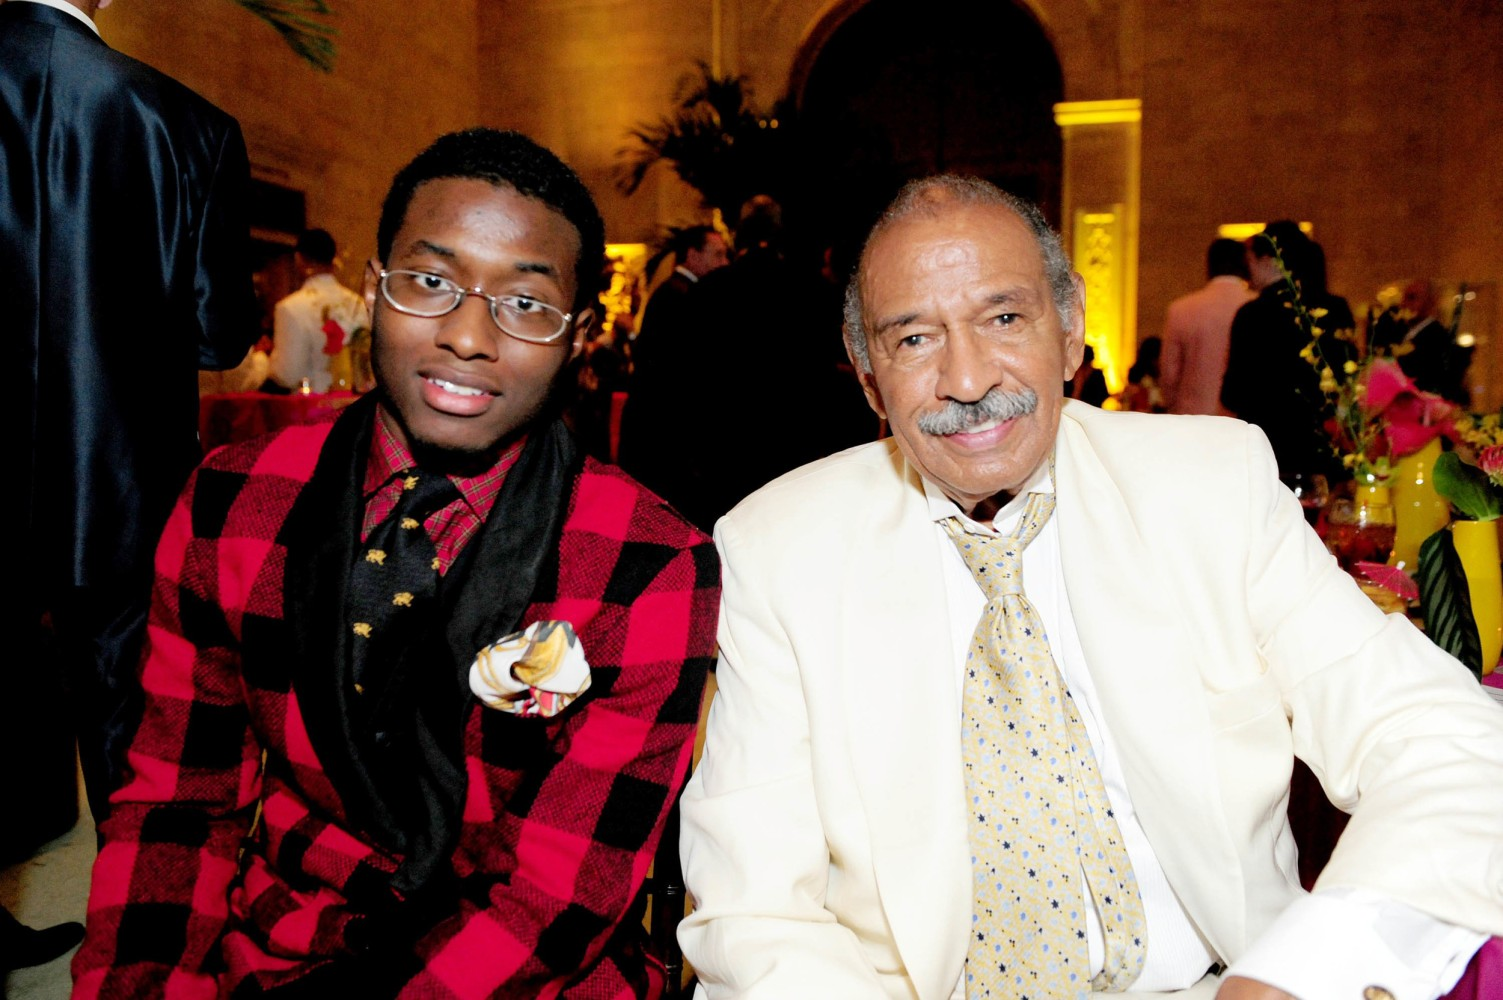 Conyers' son was accused of domestic abuse but not charged, report says